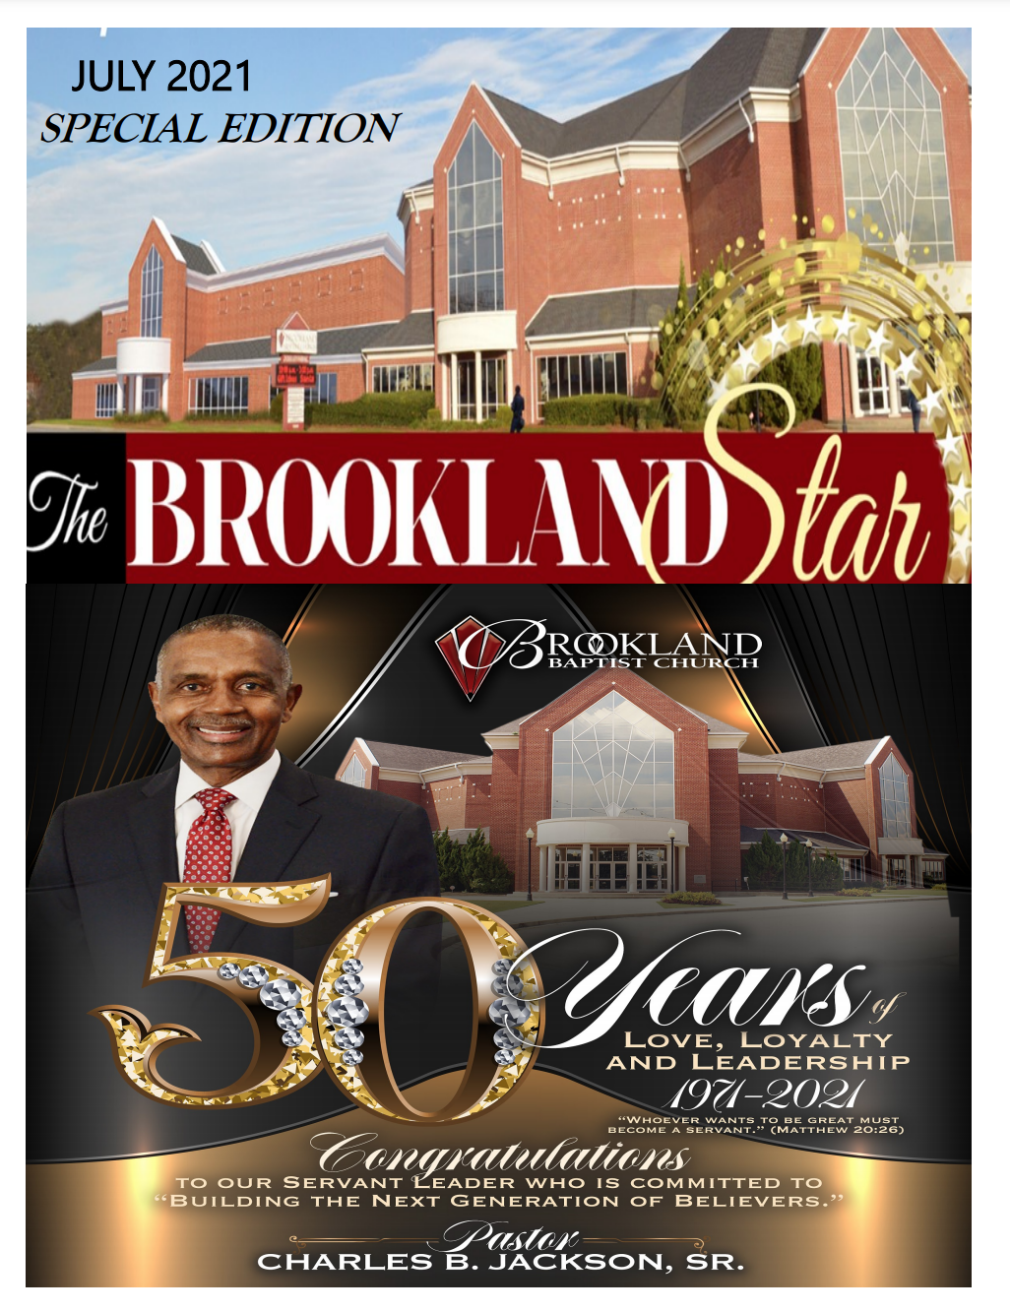 The Brookland Star July 2021 Edition